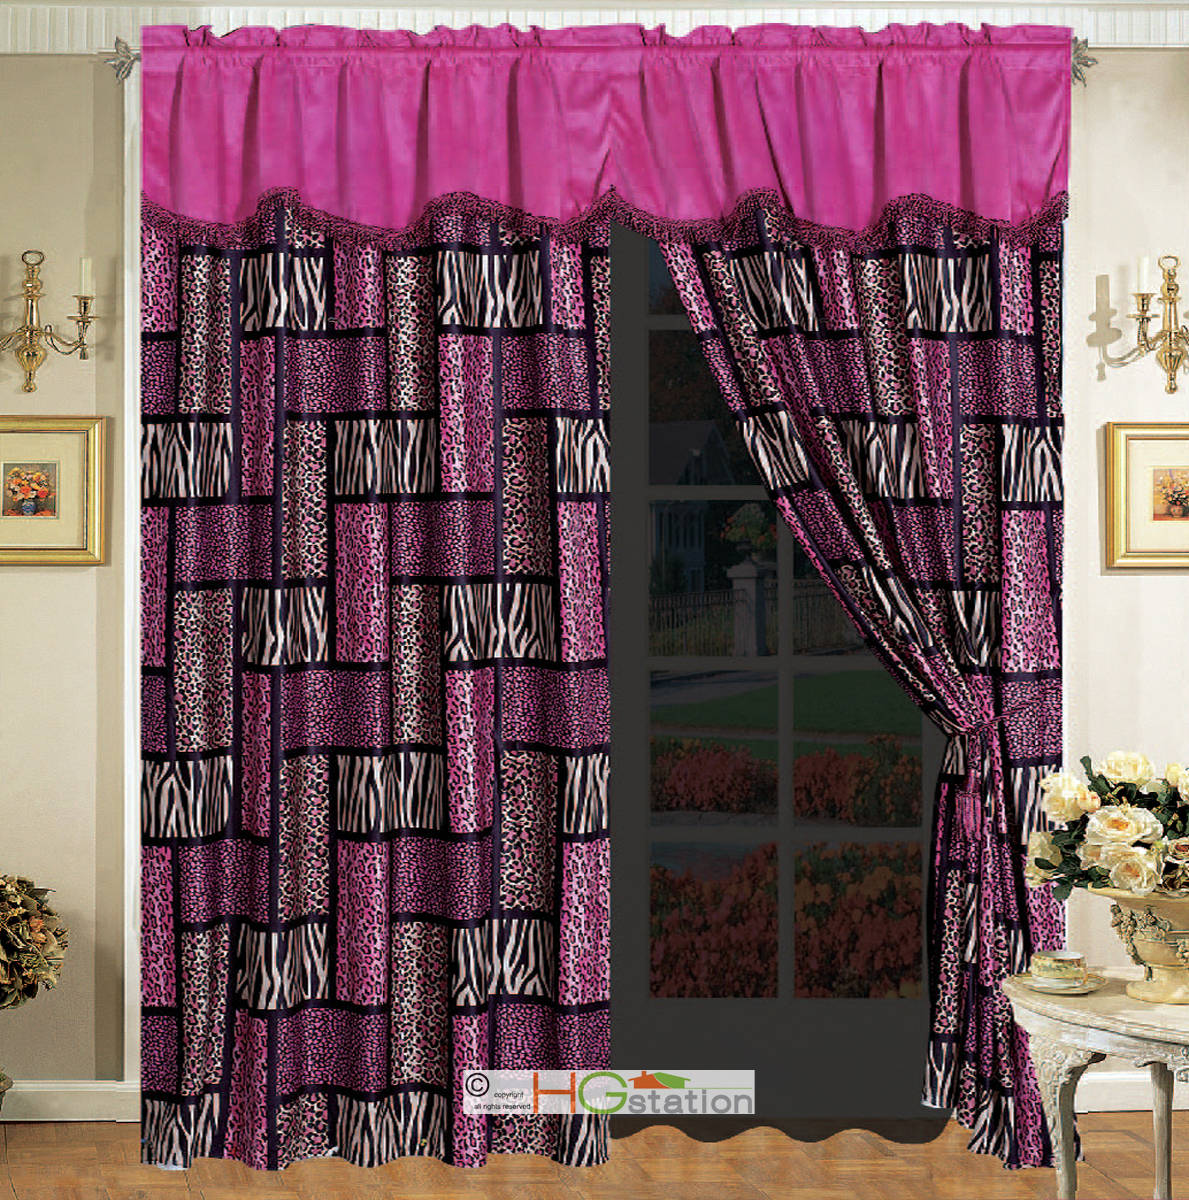 ... Leopard Cheetah Jaguar Tiger Faux Fur Curtain Set Pink | eBay